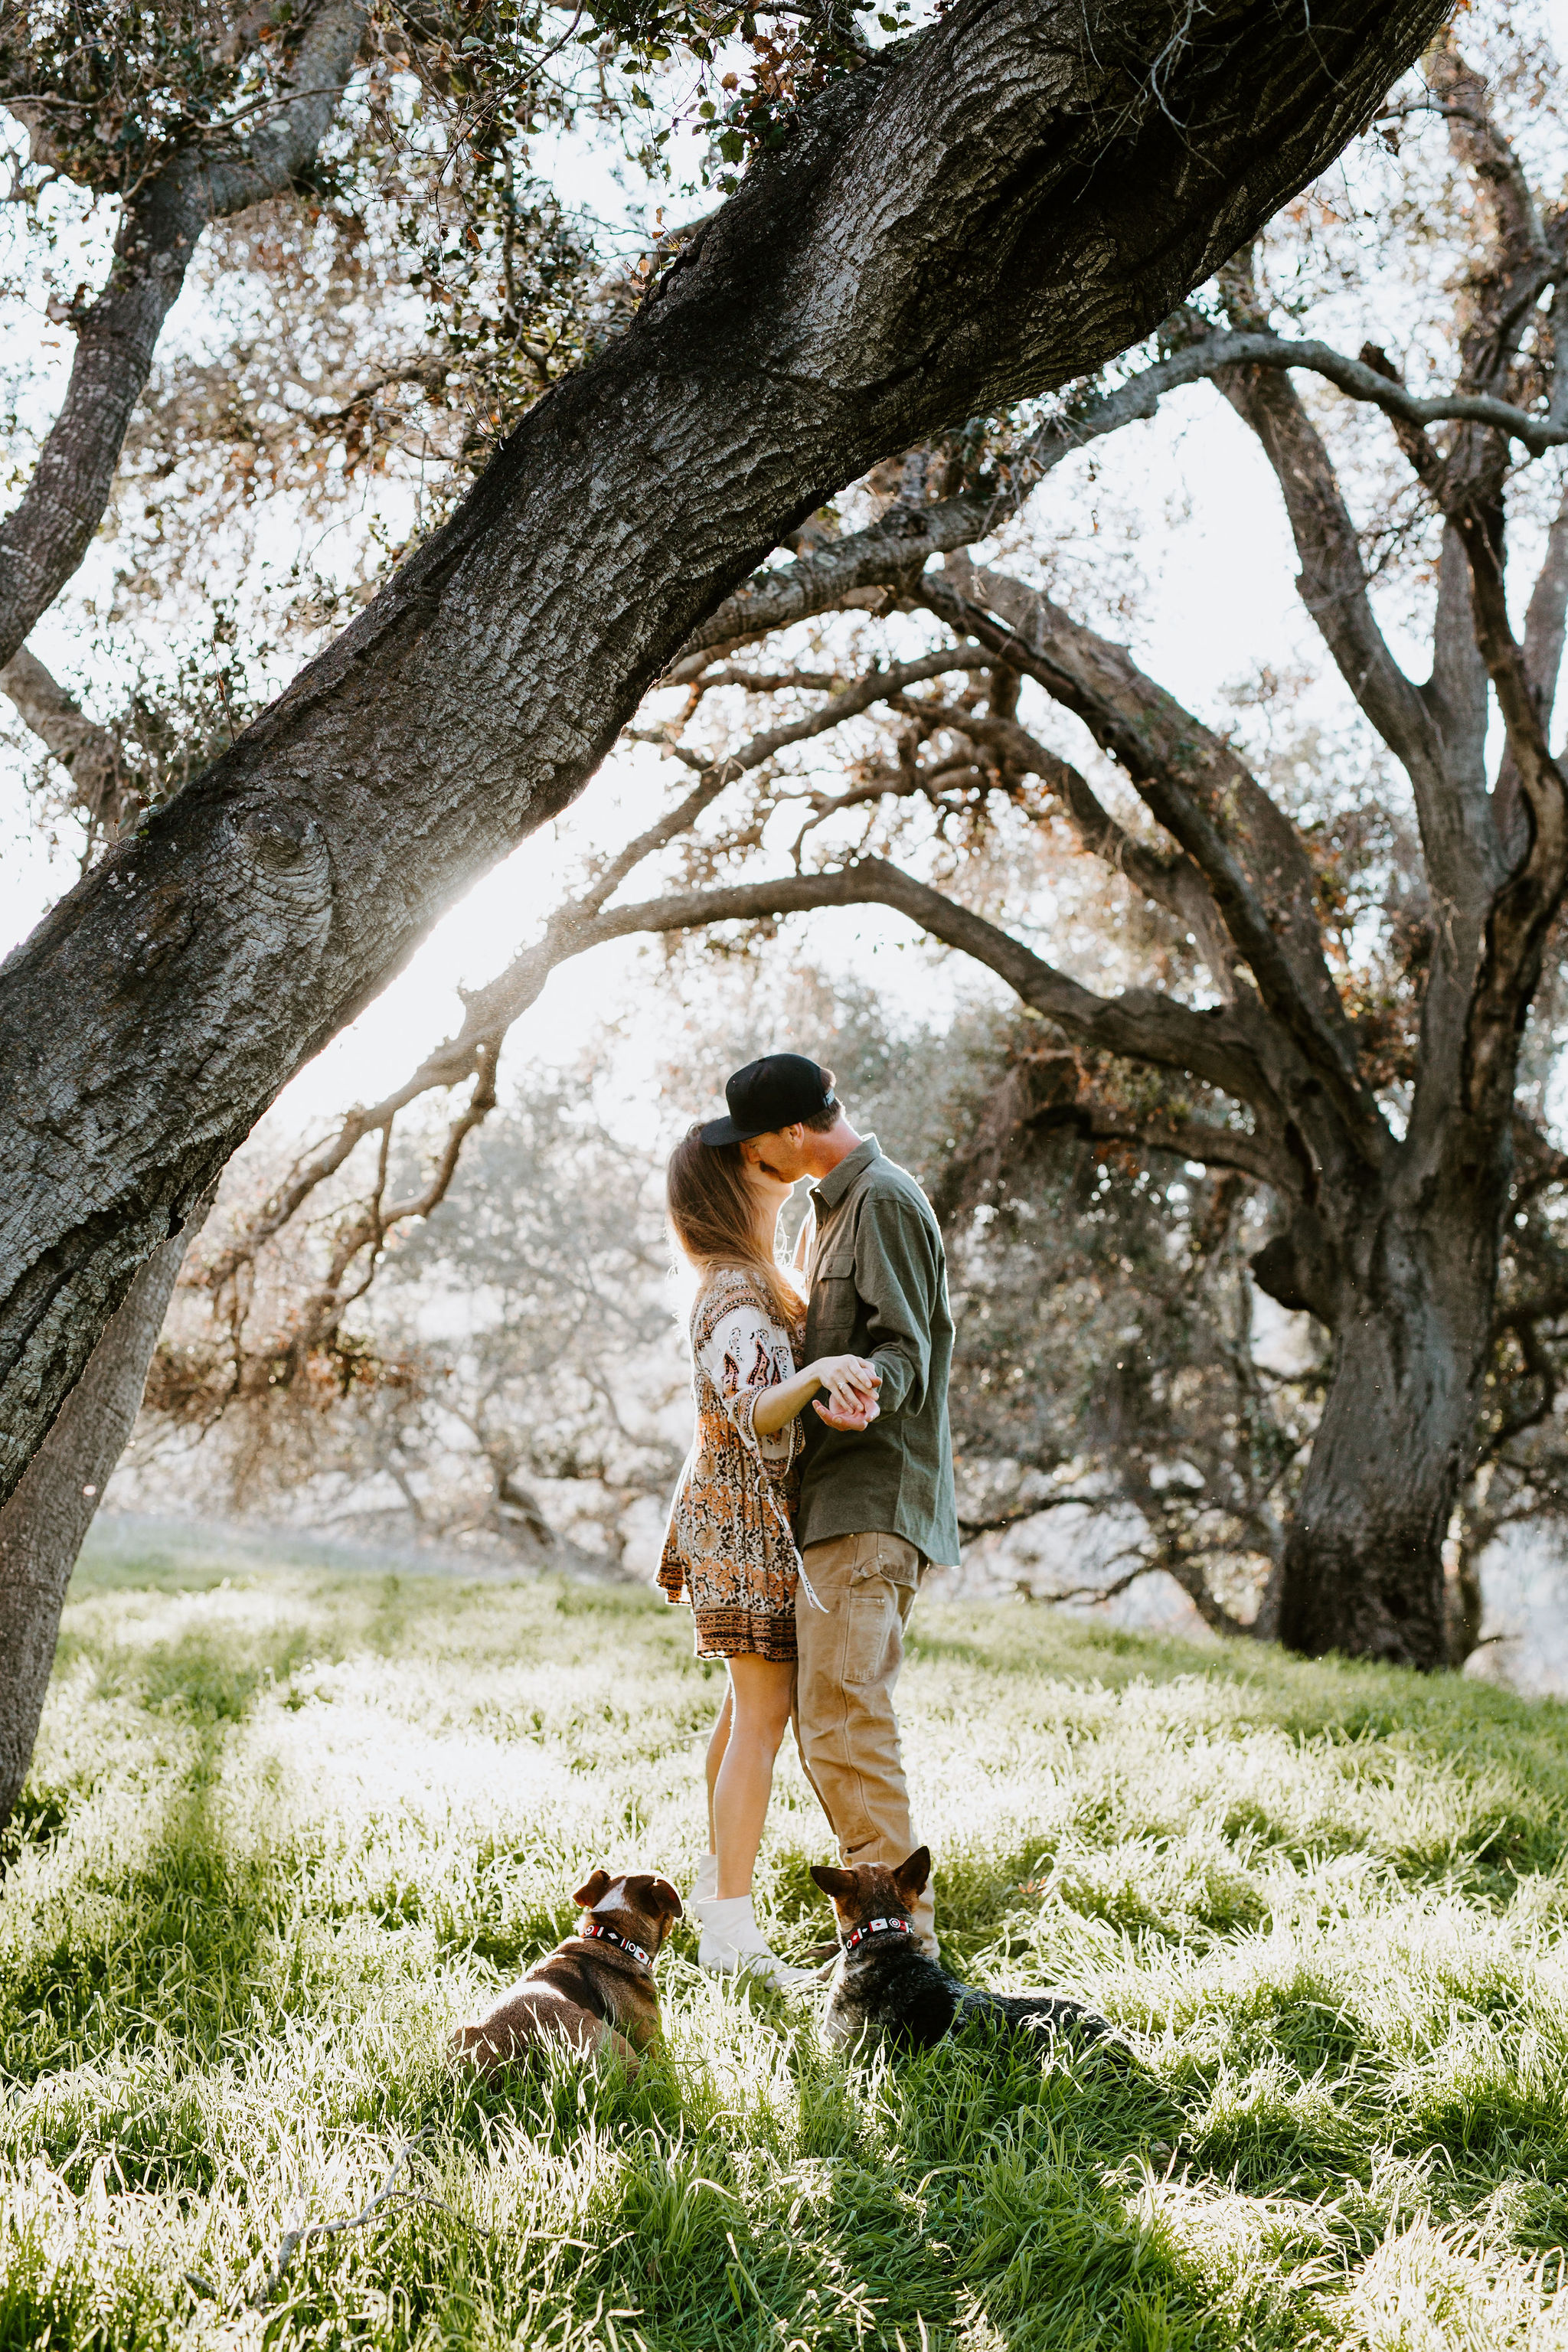 OjaiEngagementSession_Geoff&LyndsiPhotography_Eveline&Scotty31.jpg